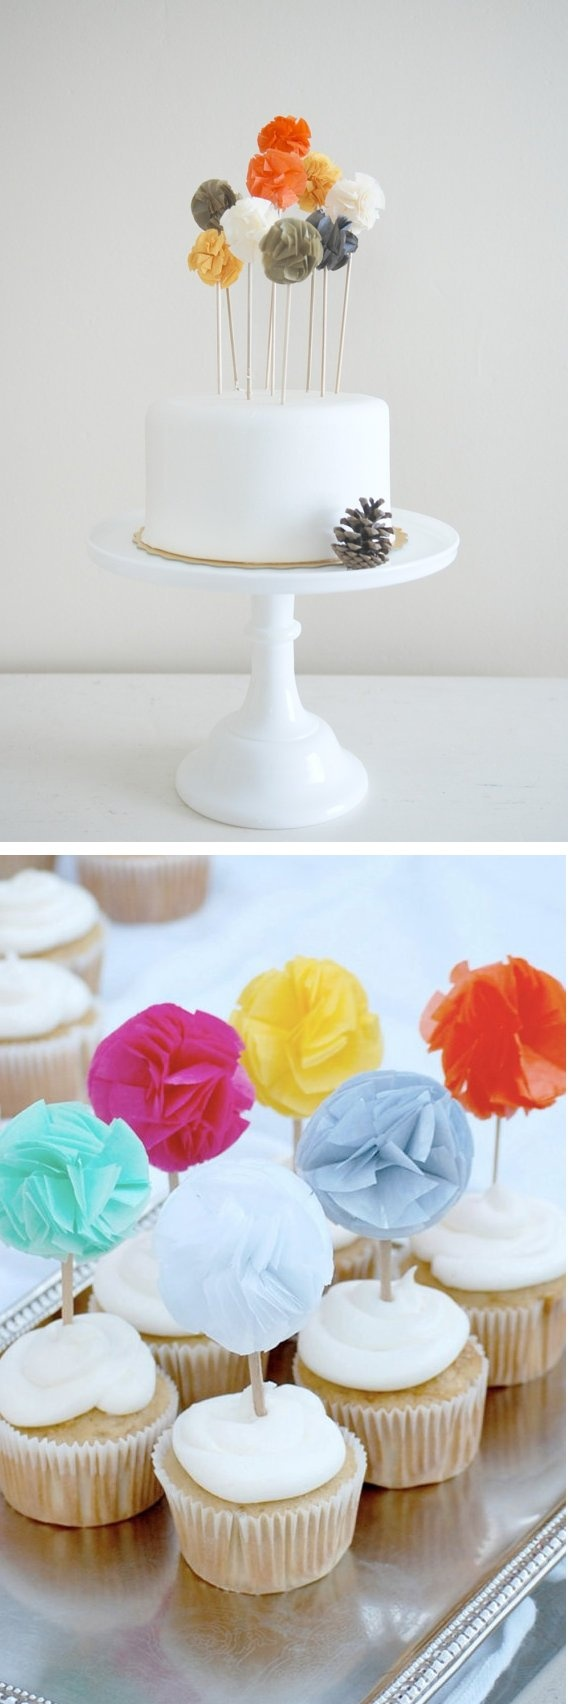 Quick Easy Cake Decorating Tips : 29 best images about Cake Decorating ideas on Pinterest